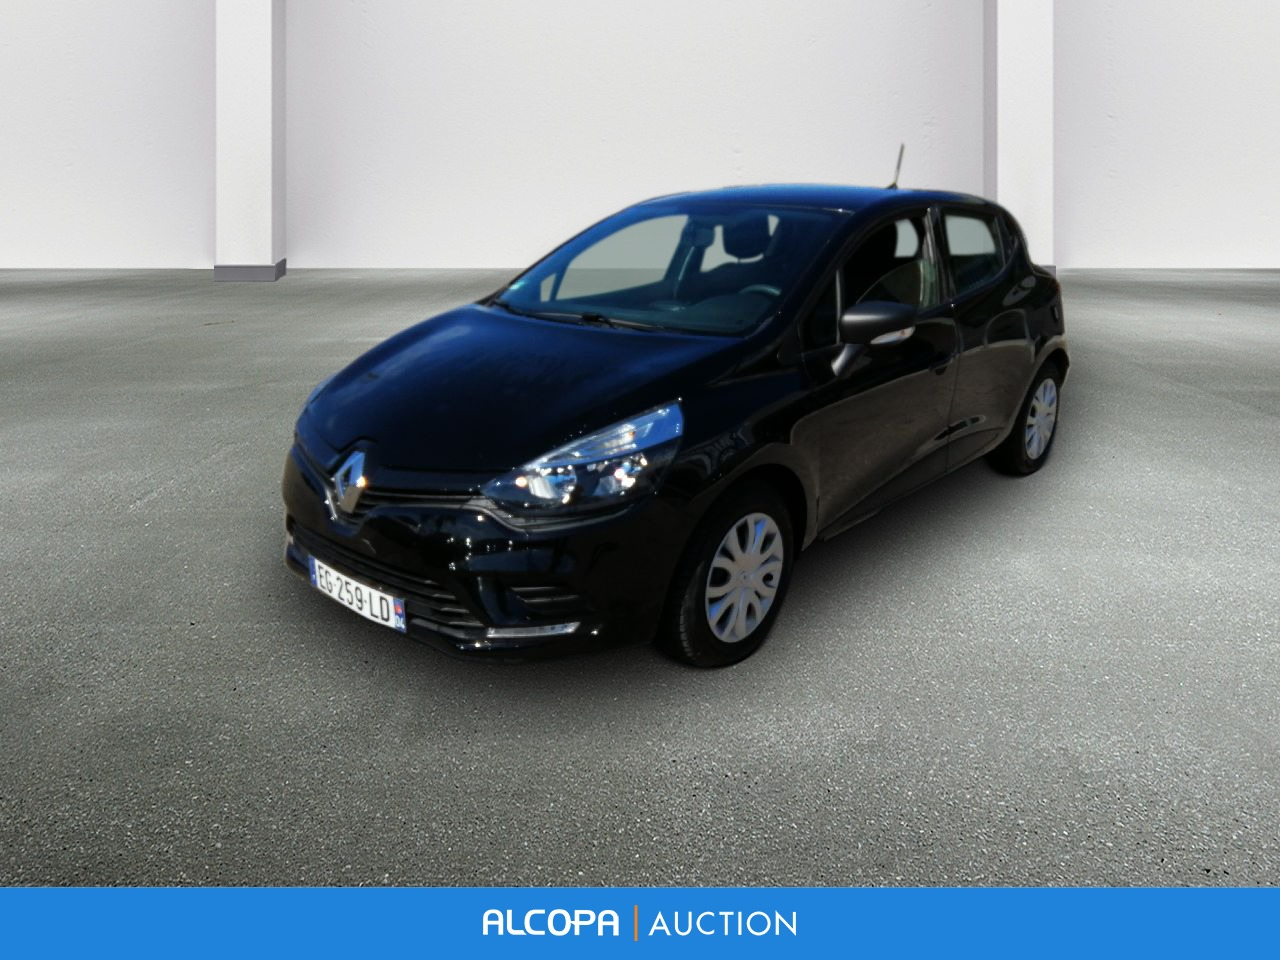 renault clio iv clio dci 75 energy life marseille alcopa auction. Black Bedroom Furniture Sets. Home Design Ideas